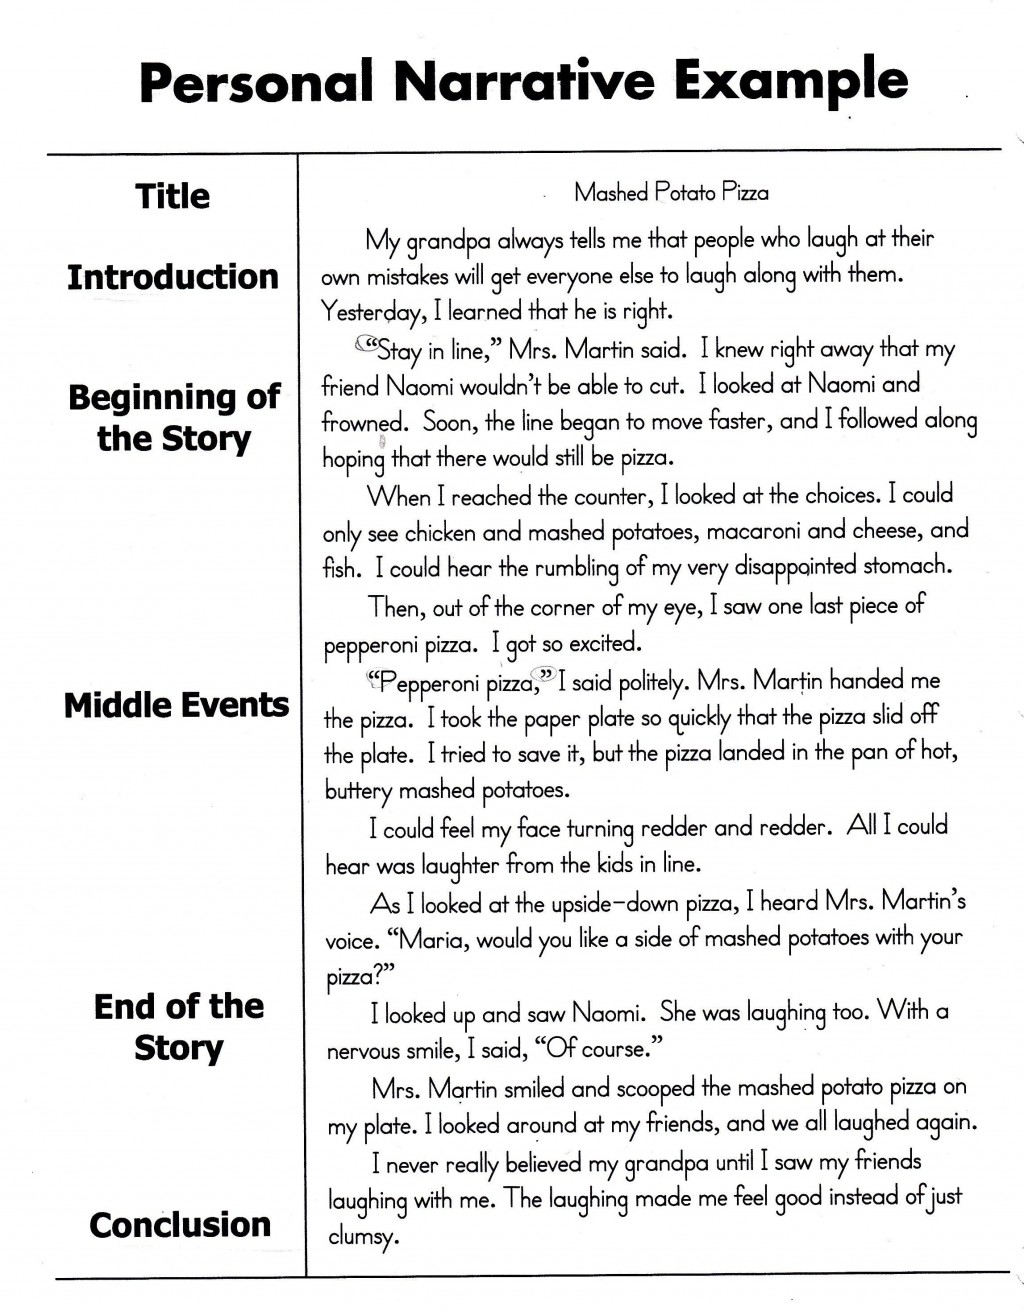 002 How To Write Personal Narrative Essay Astounding A Introduction For High School Large